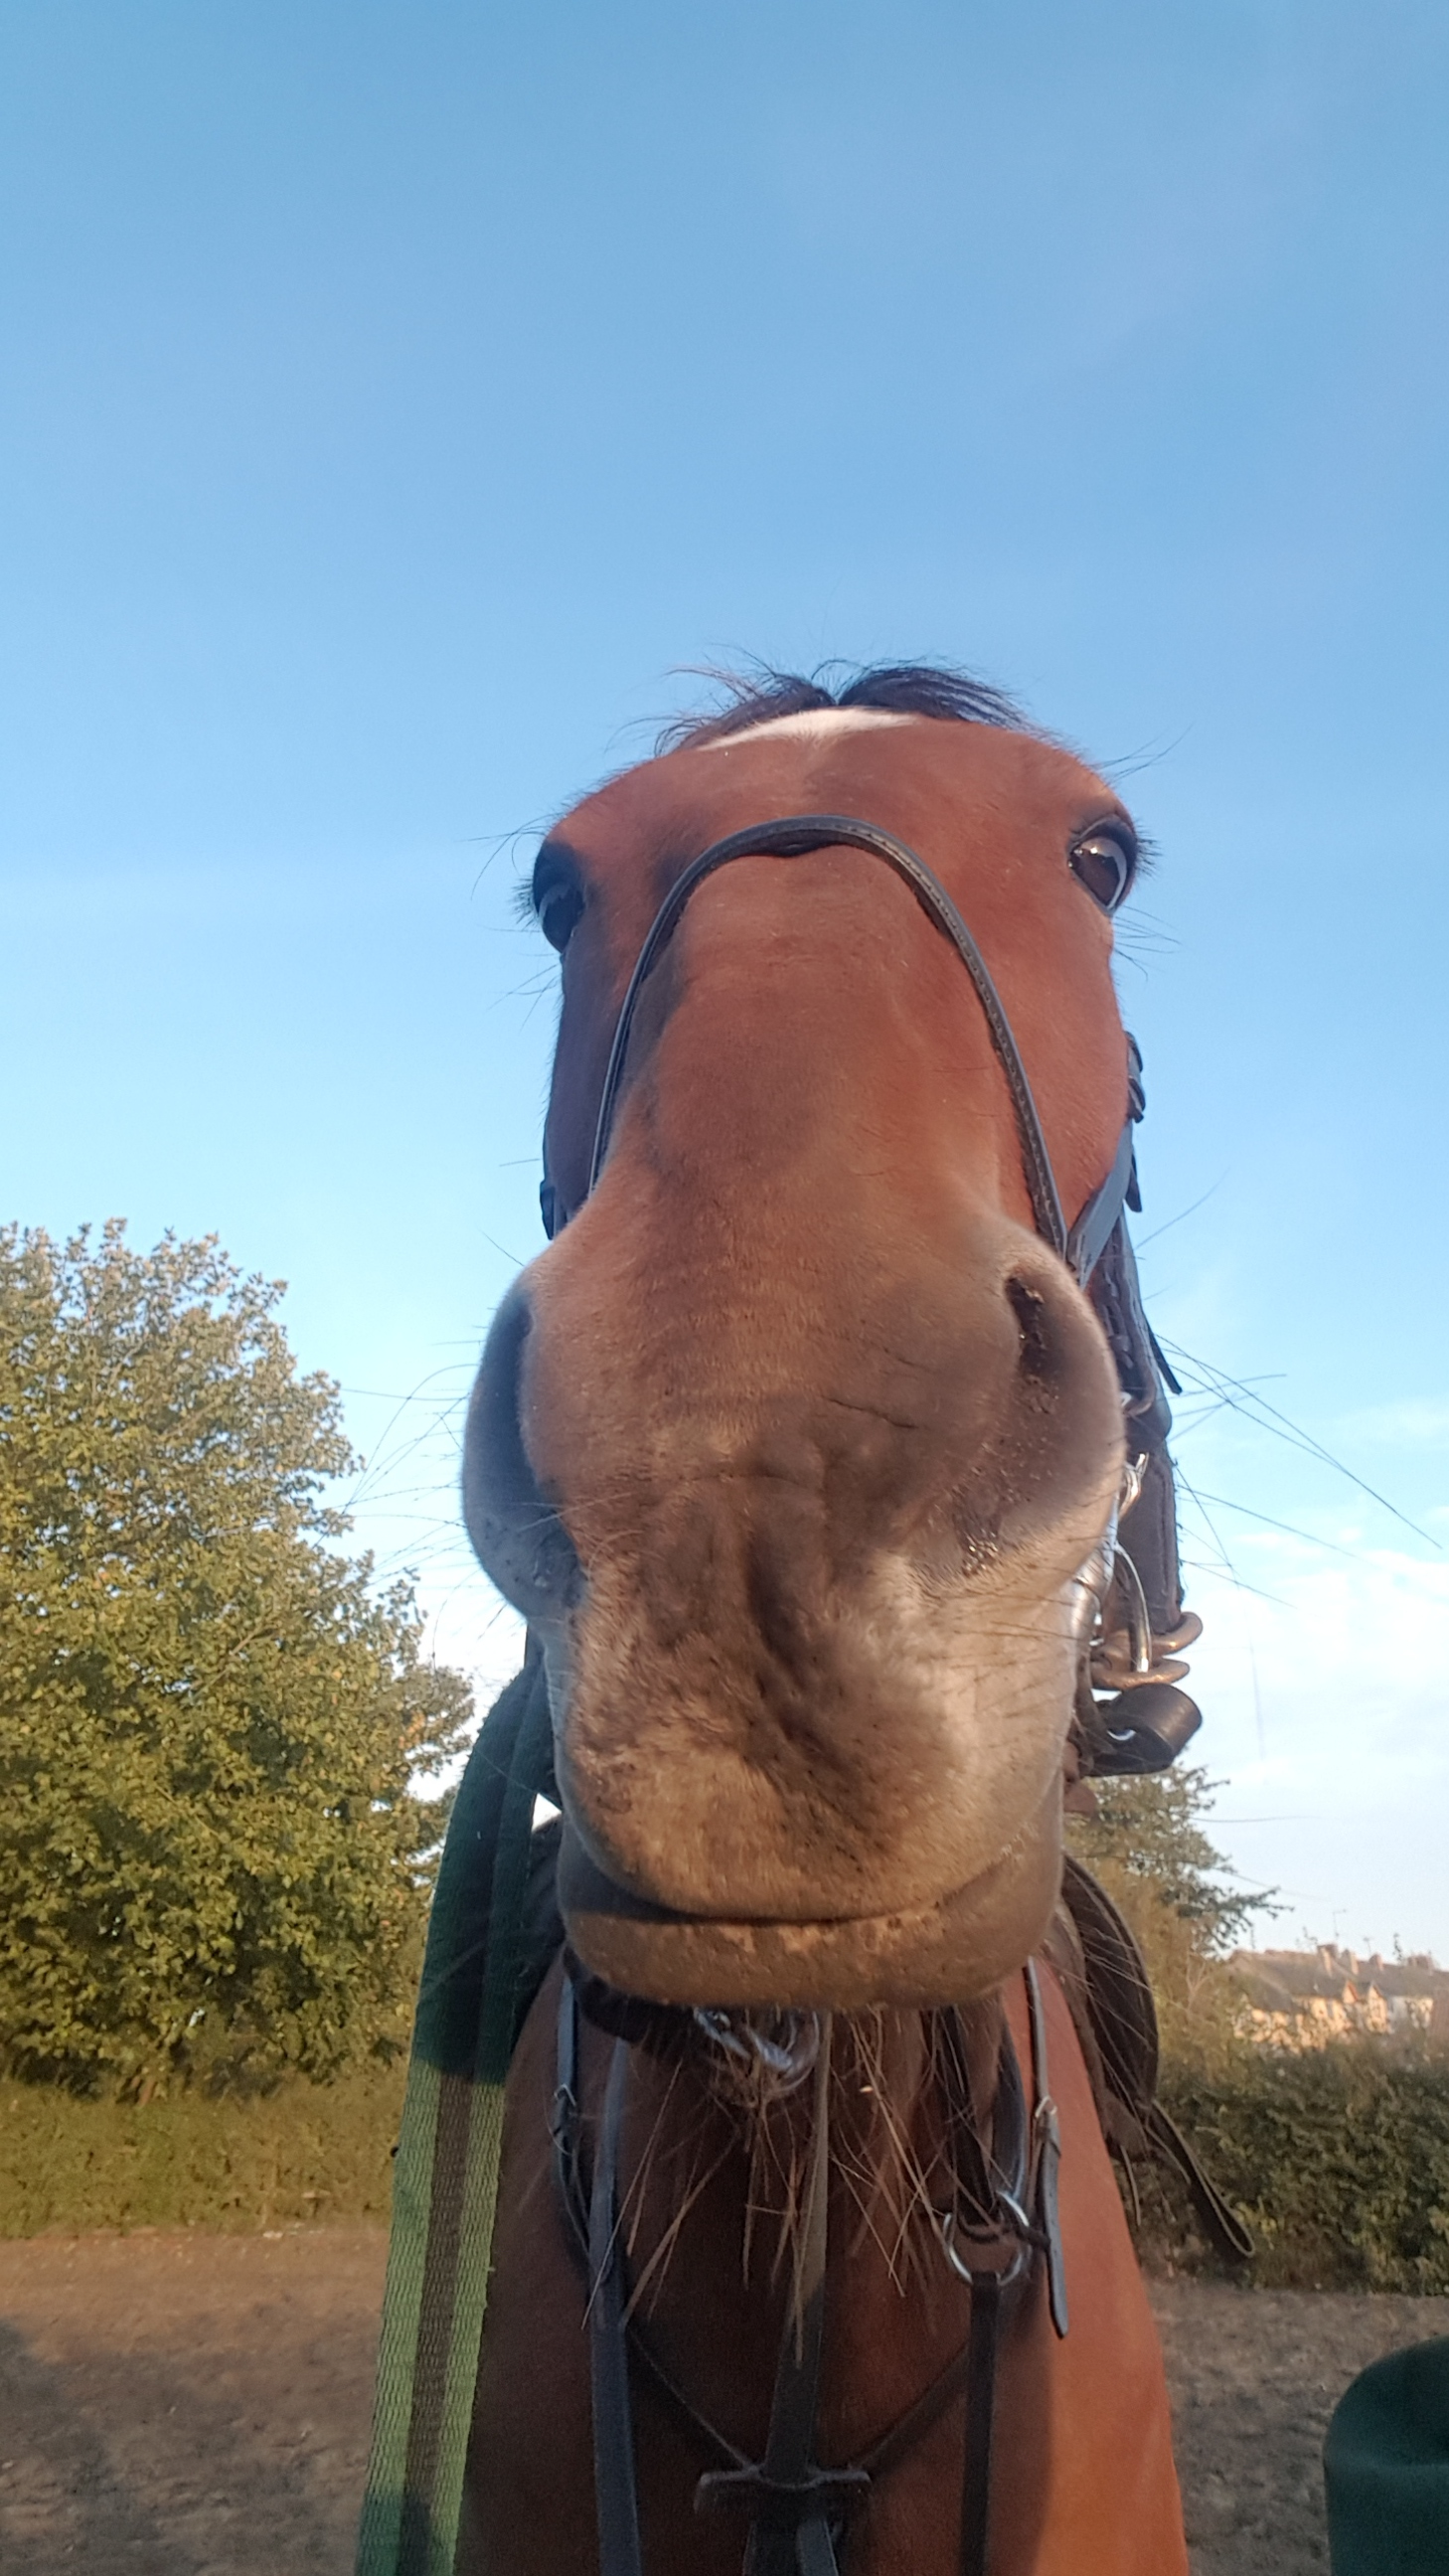 No ear Bob, something tells me he's not impressed with flat work today!